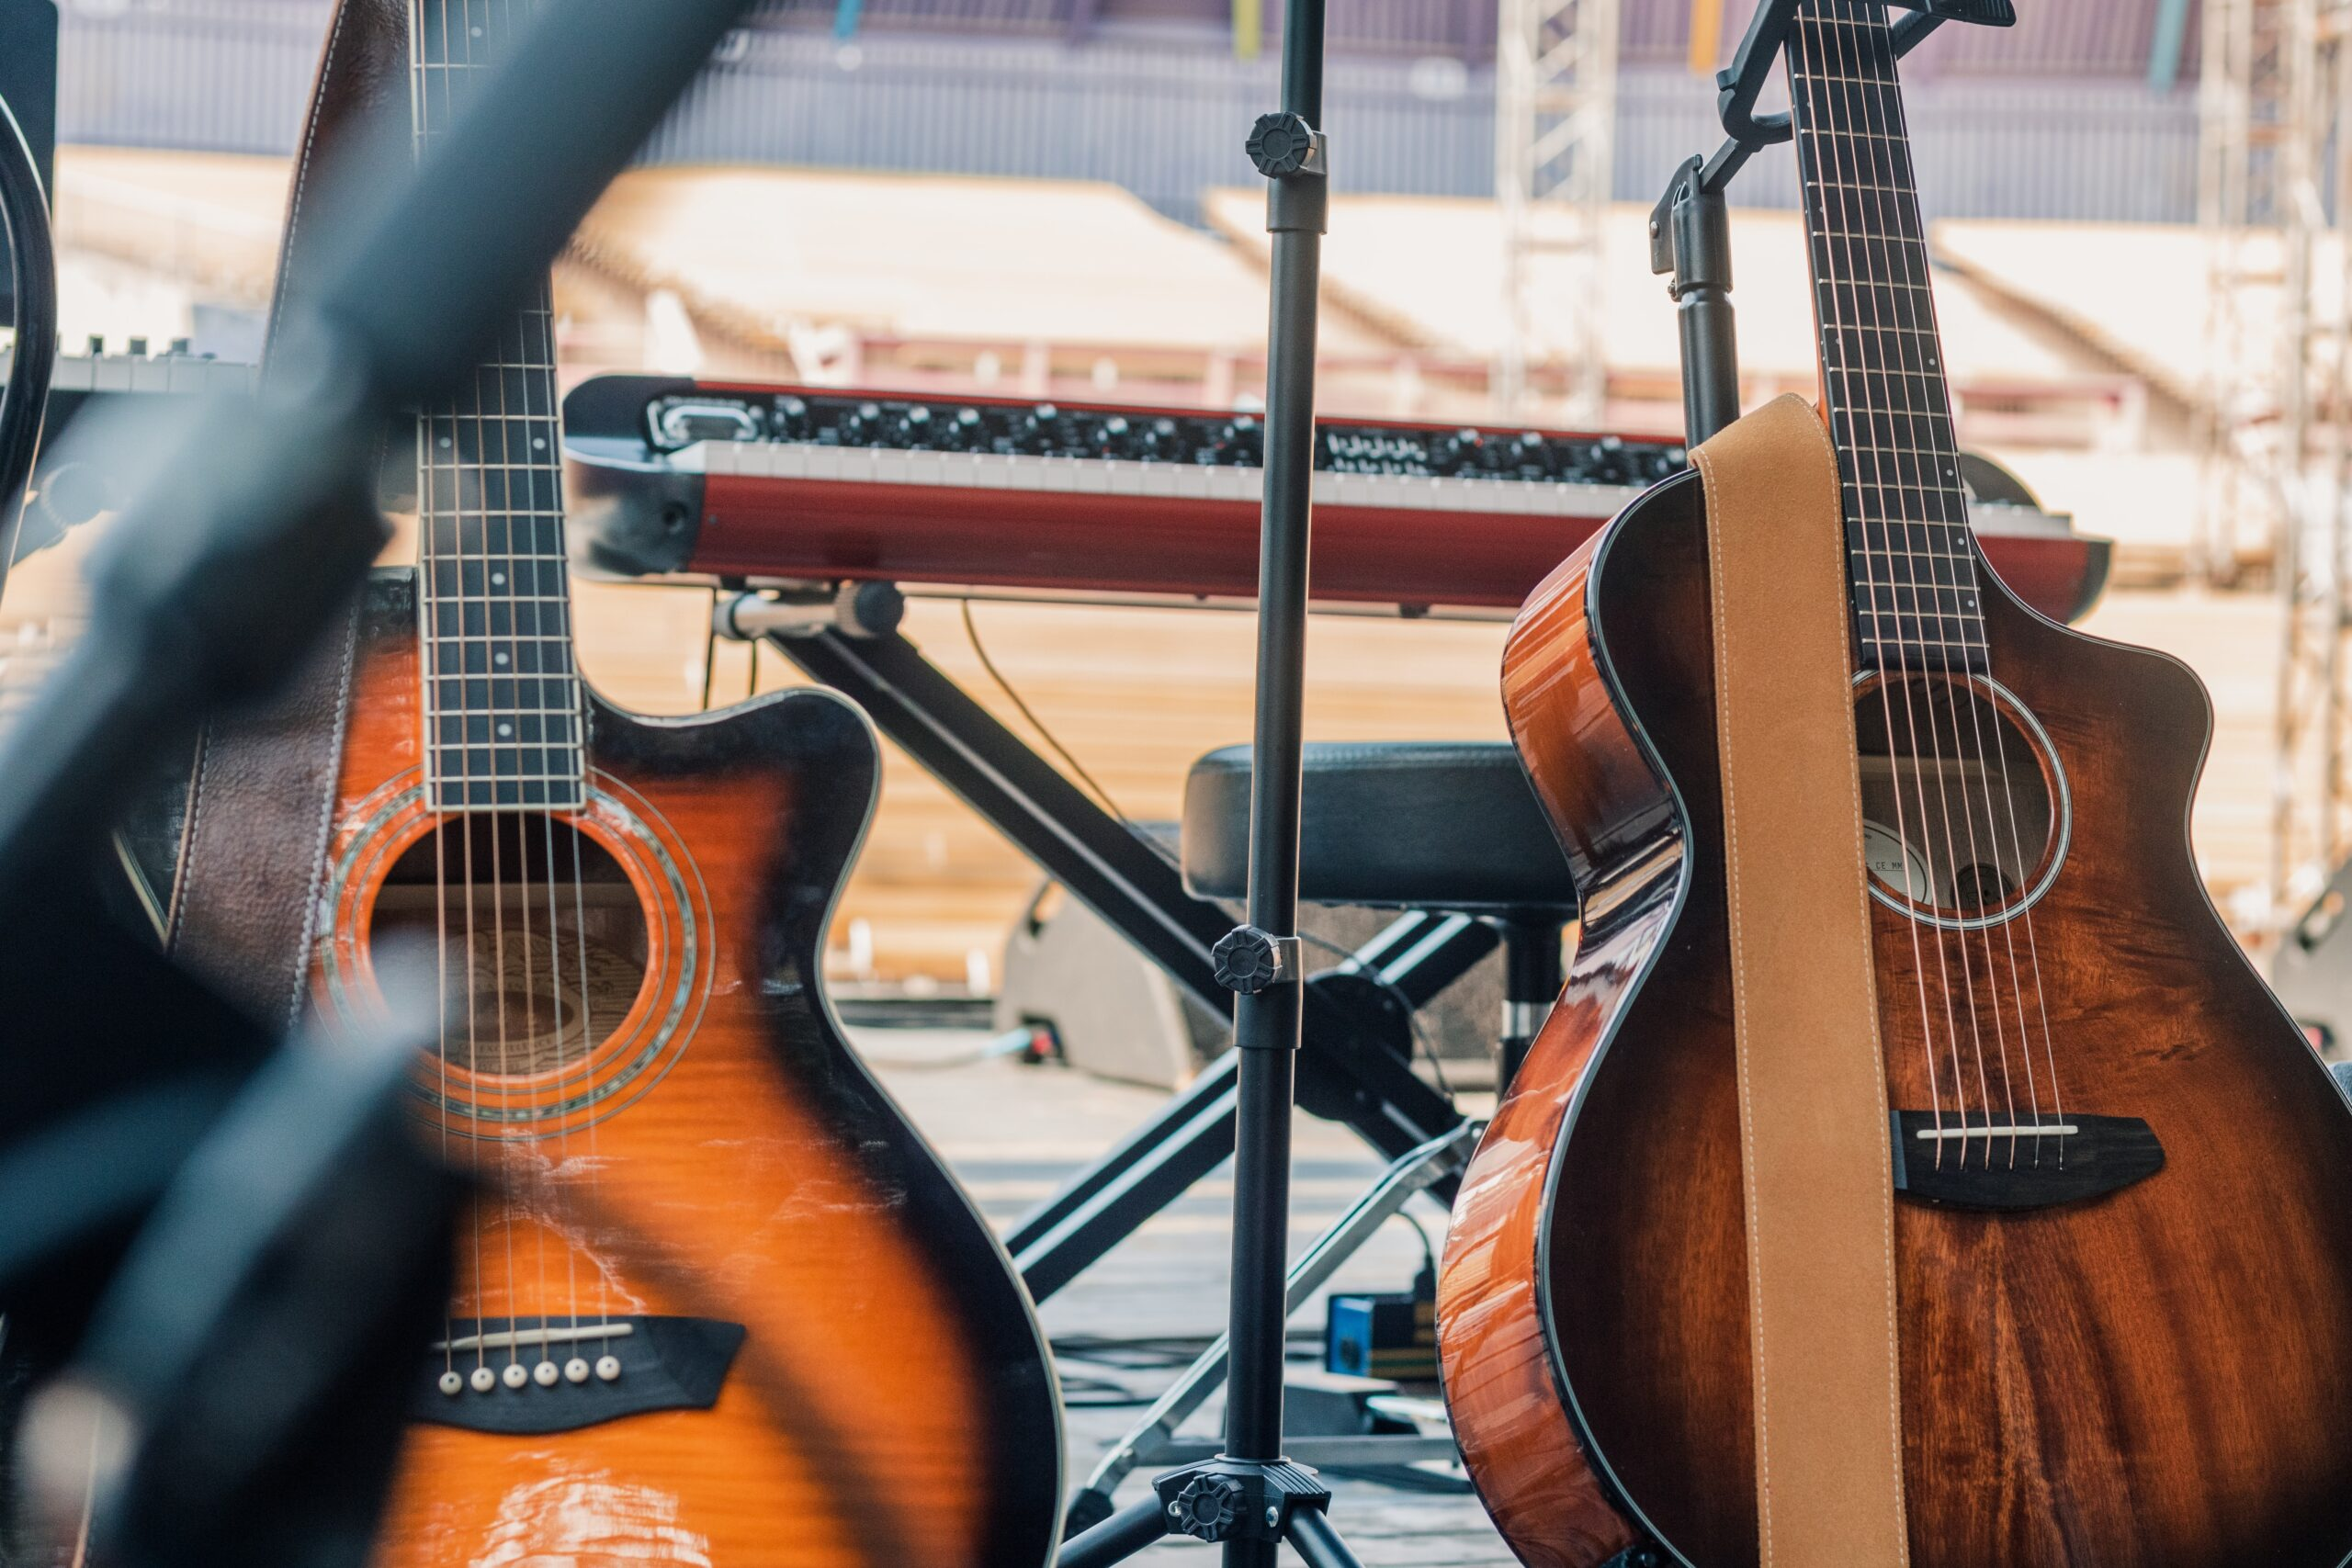 Two Brown Guitars | The Top 10 Ways To Practice Acoustic Guitar Techniques